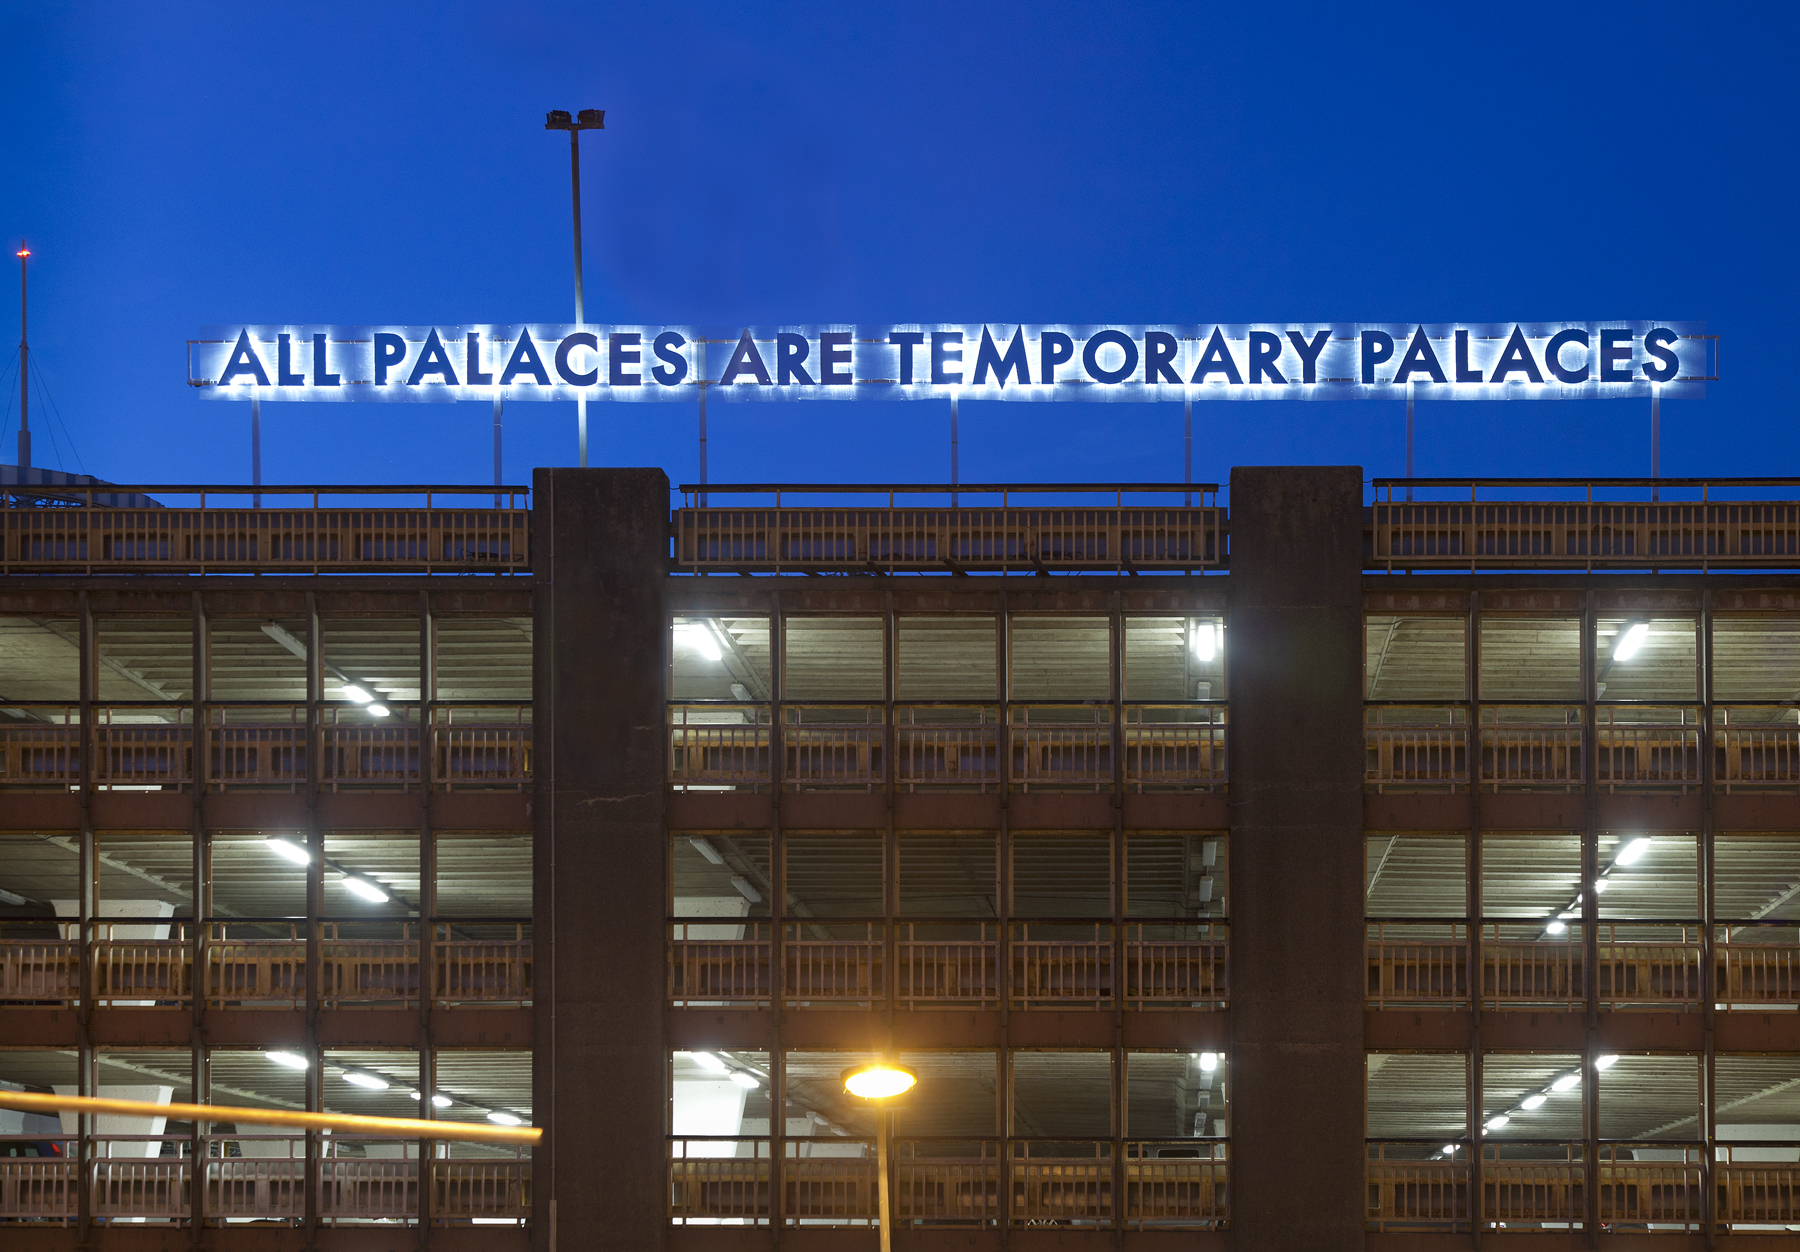 robert-montgomery-all-palaces-are-temporary-palaces-c-jamie-woodley